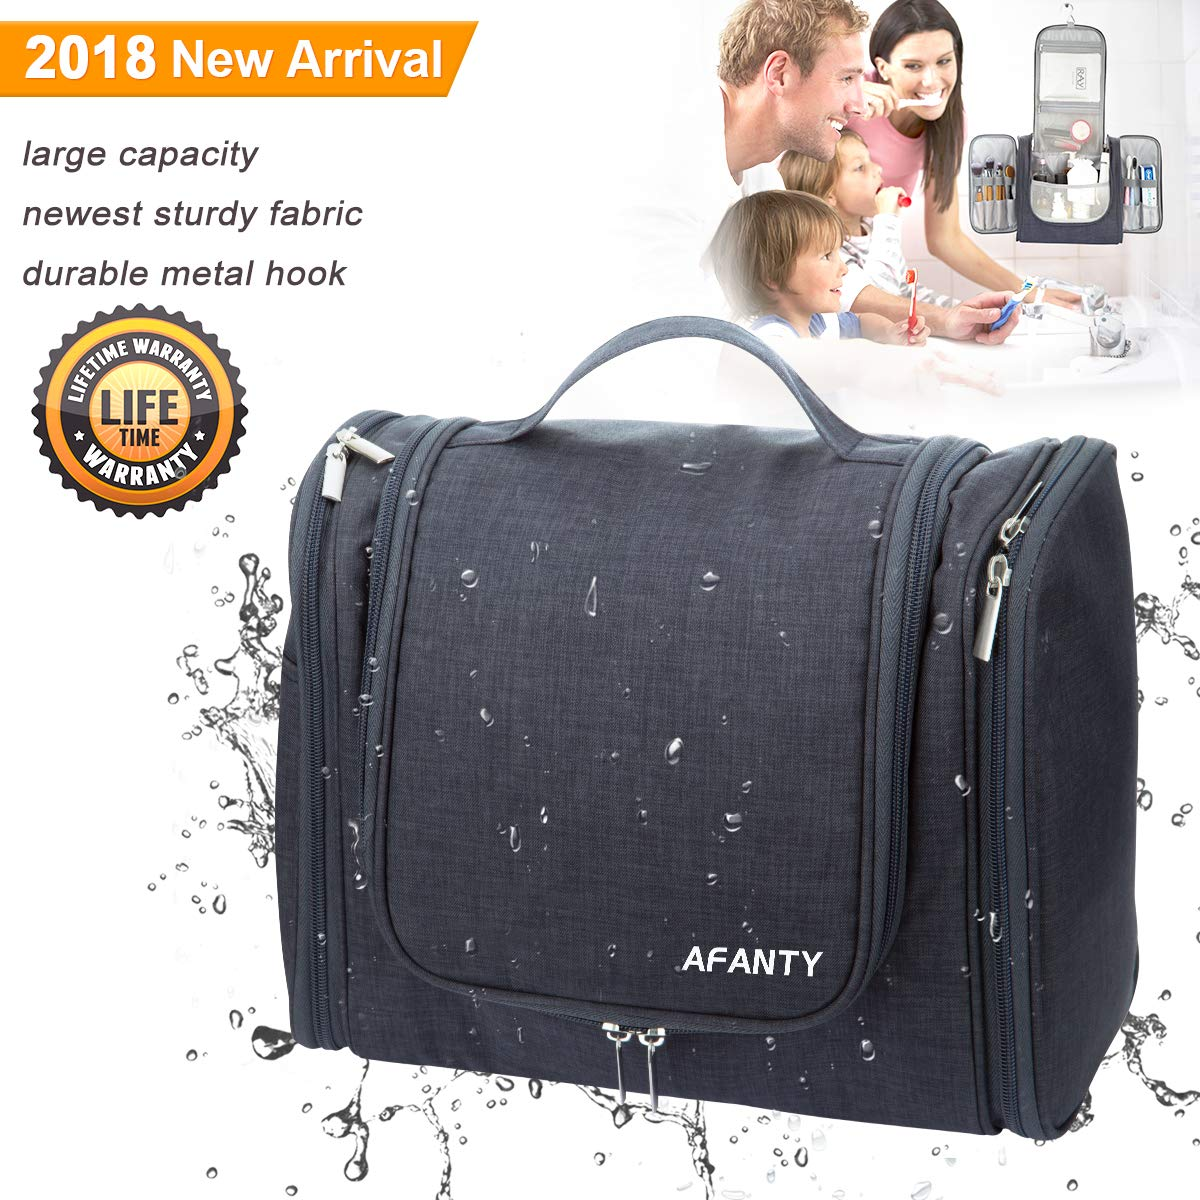 Hanging Toiletry Bag Large For Men and Women Waterproof Expandable Hanging Full Size Bottles Travel Toiletry Bag for Accessories Toiletries Kit Makeup Organizer, Large Travel Bathroom Bag with Hook